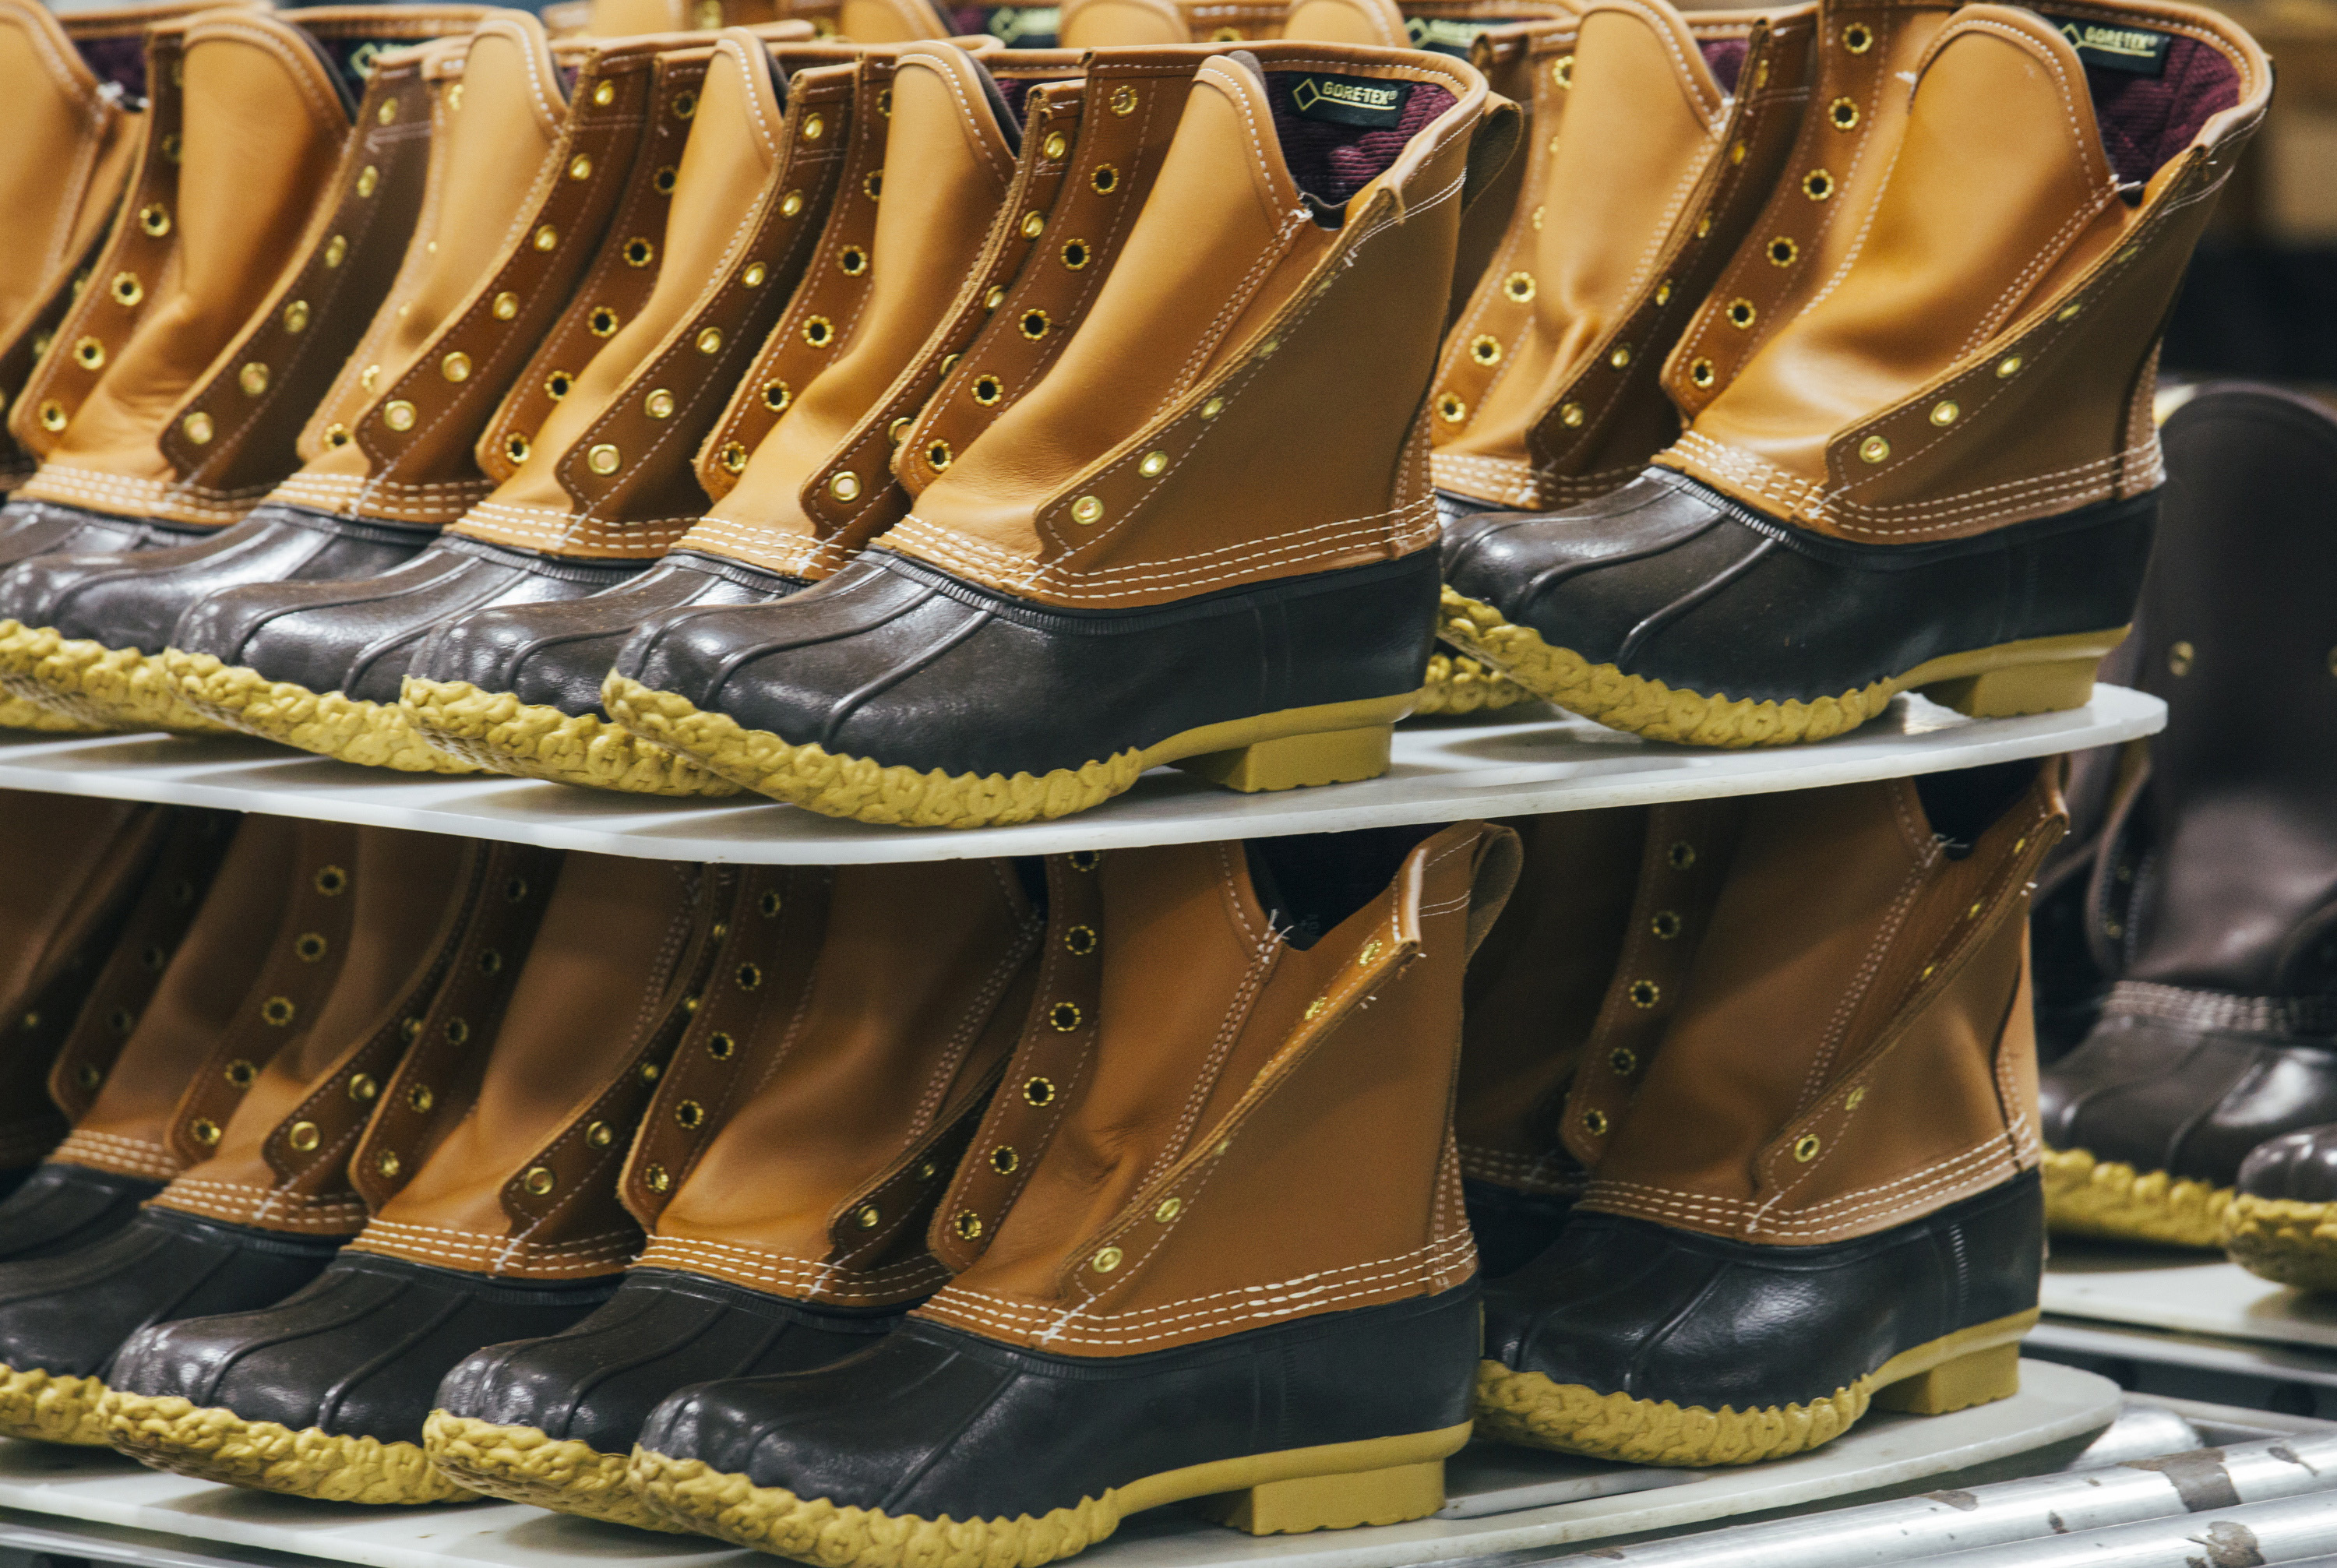 L.L. Bean is teaming up with Nordstrom